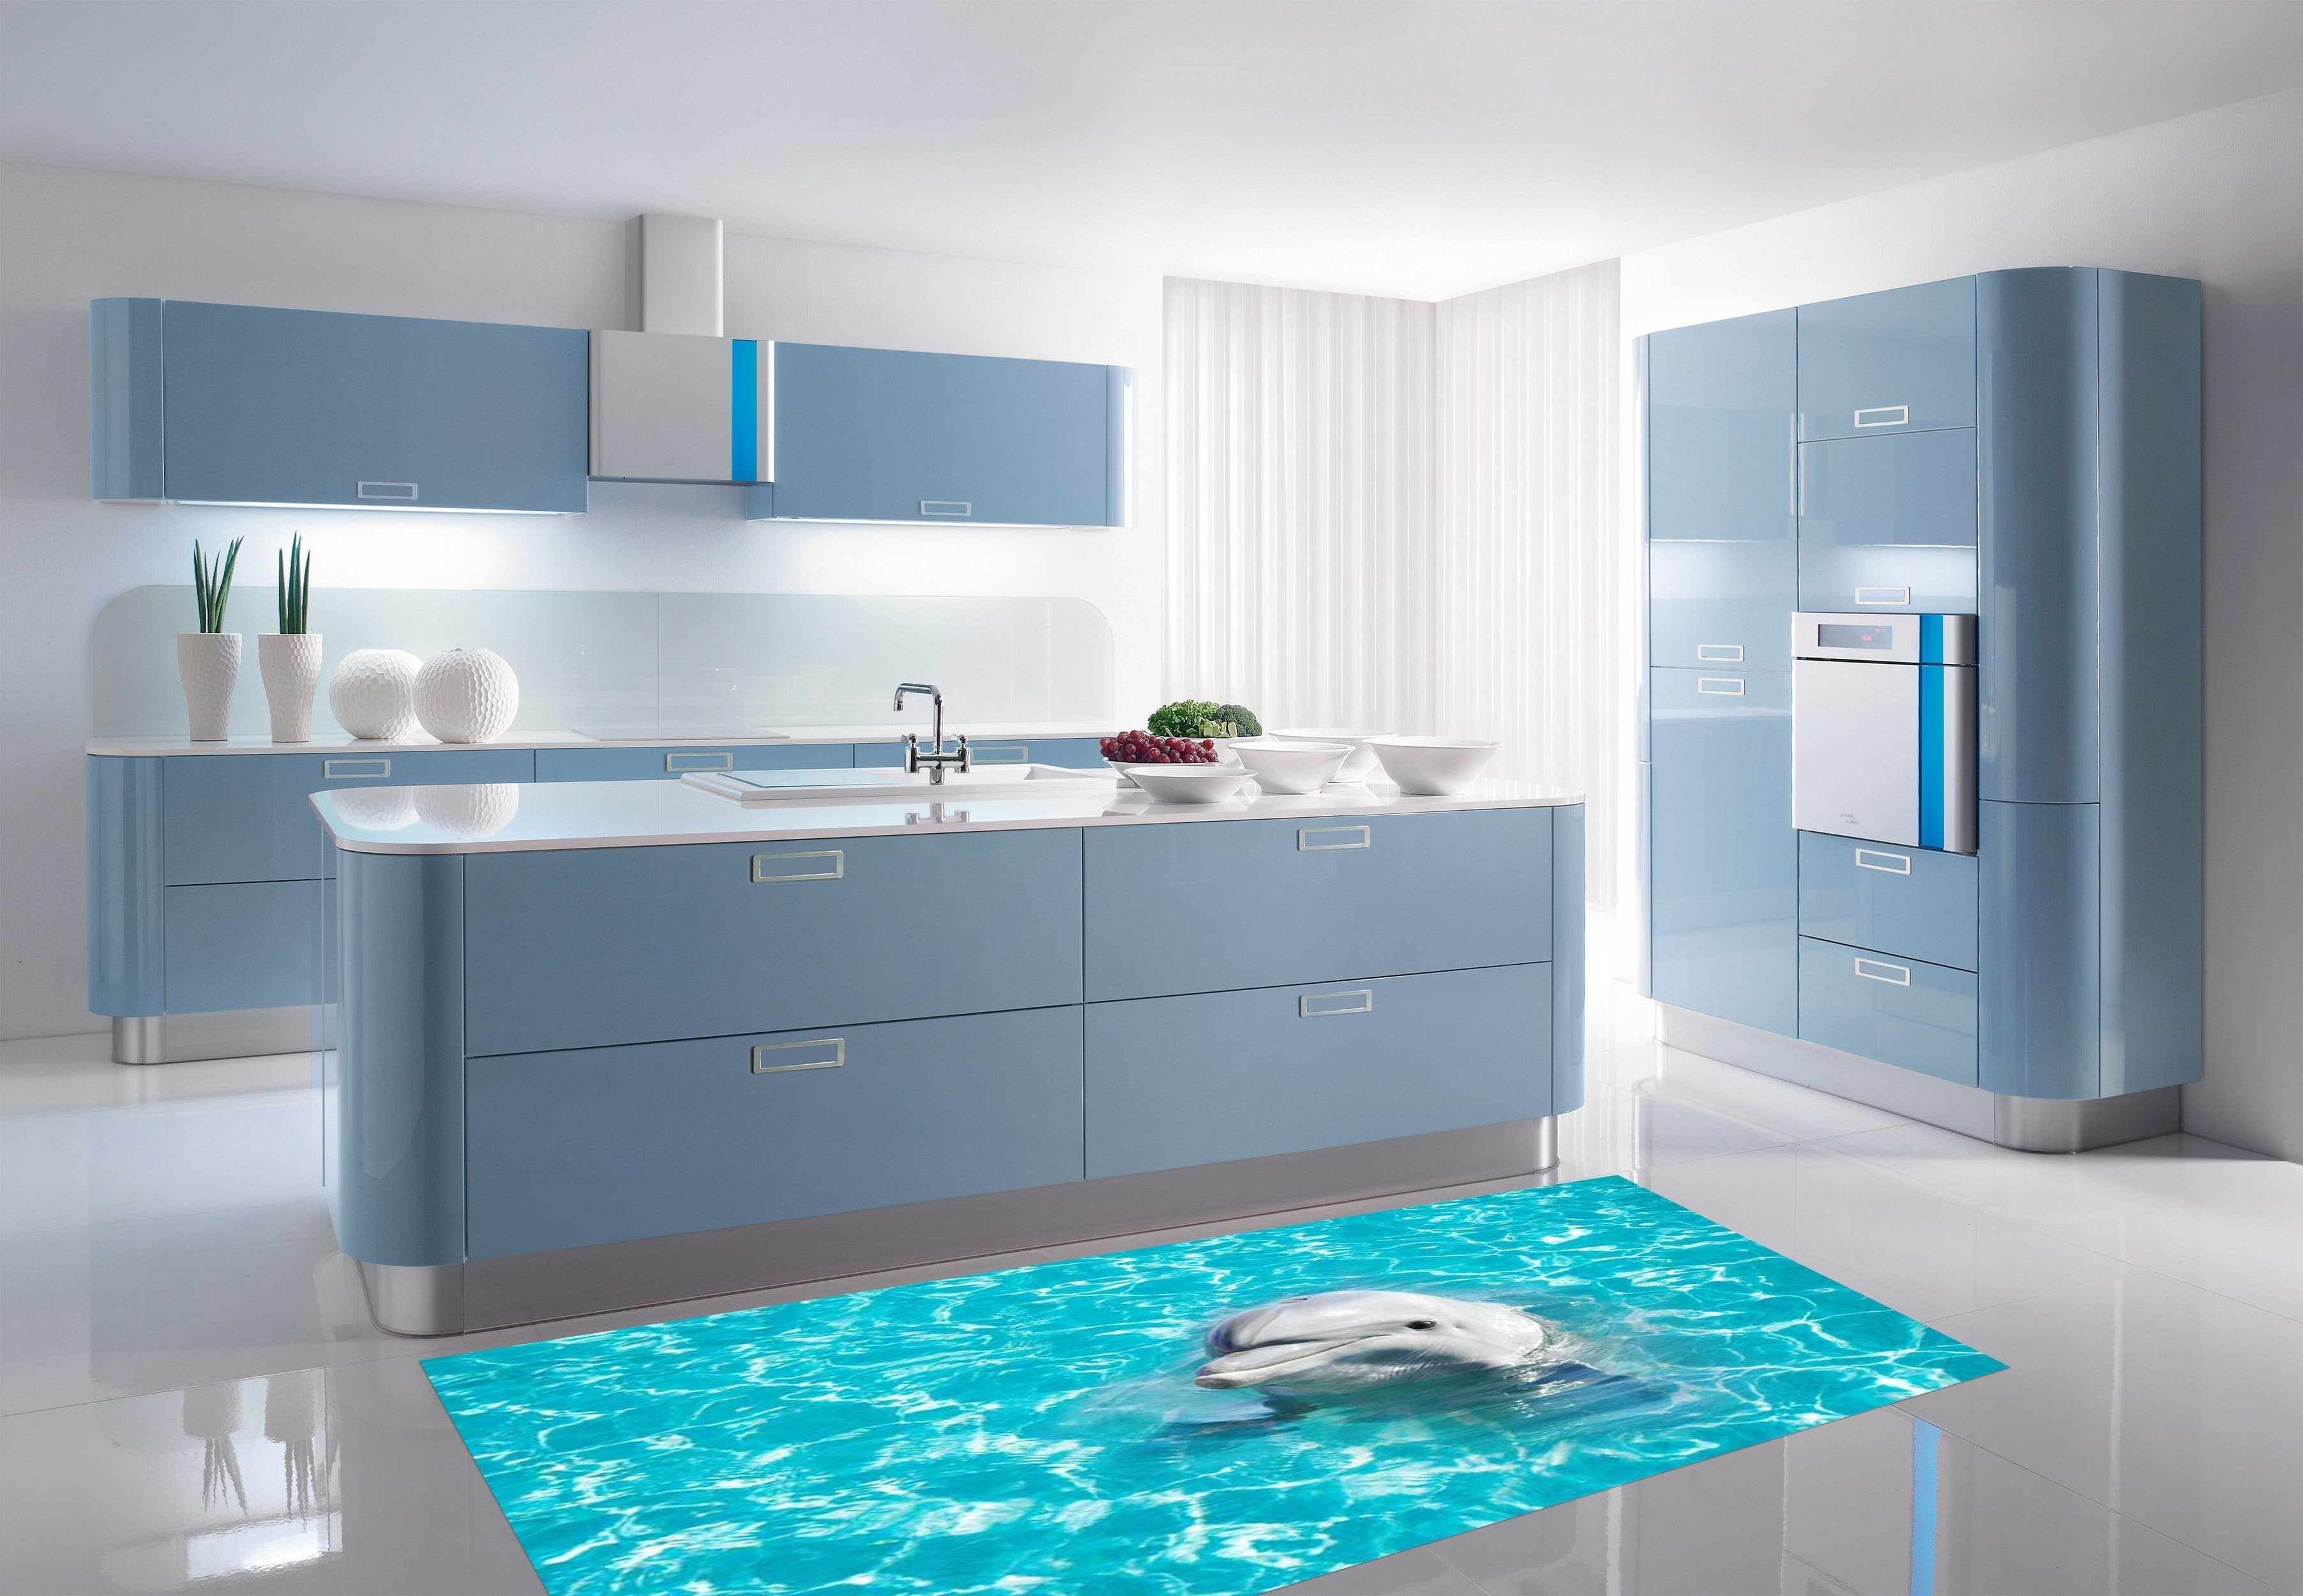 3D Blue Sea Dolphin 031 Kitchen Mat Floor Mural | AJ Wallpaper